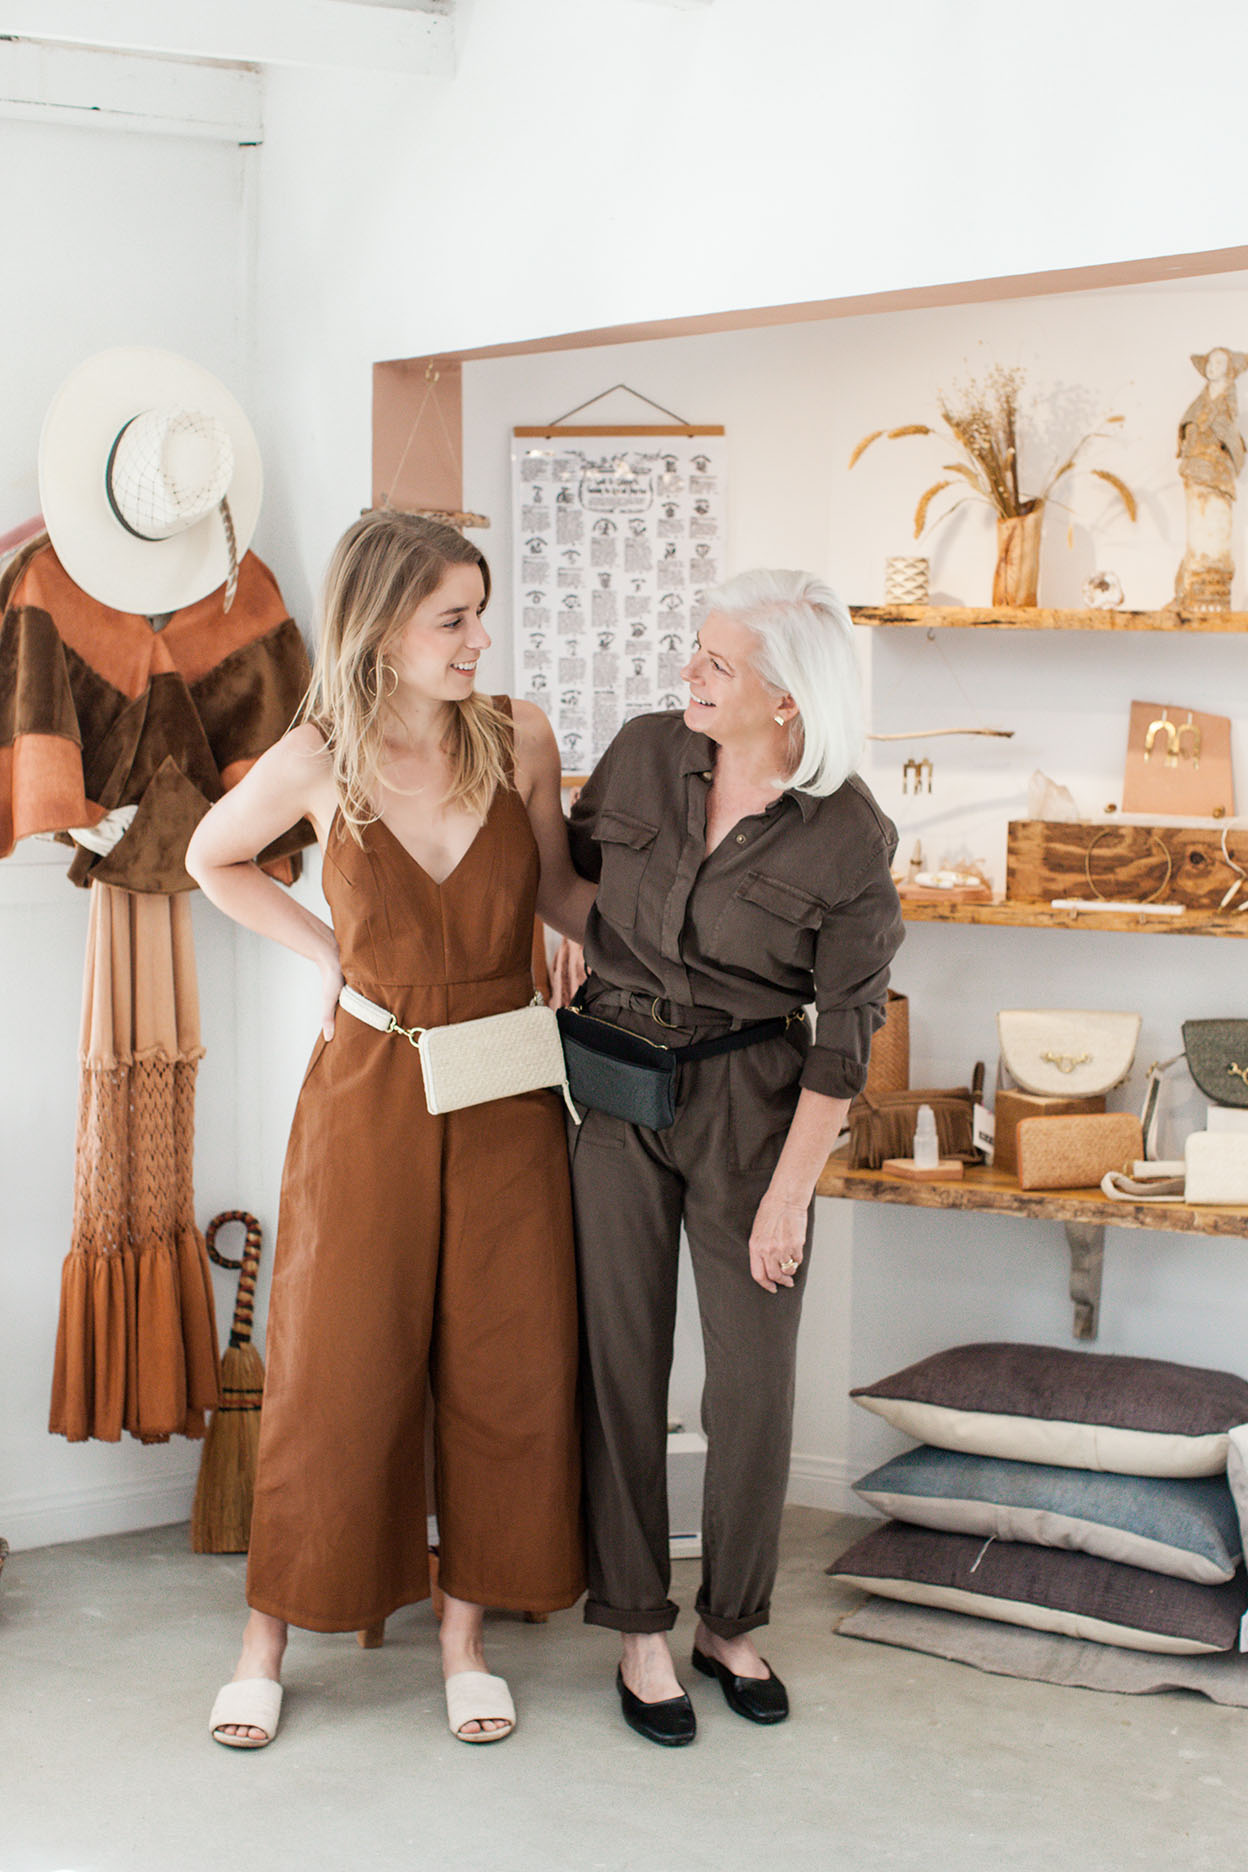 HFS Collective   Sustainable Fashion   Hand Free Bags   Rachel and Debra Denison